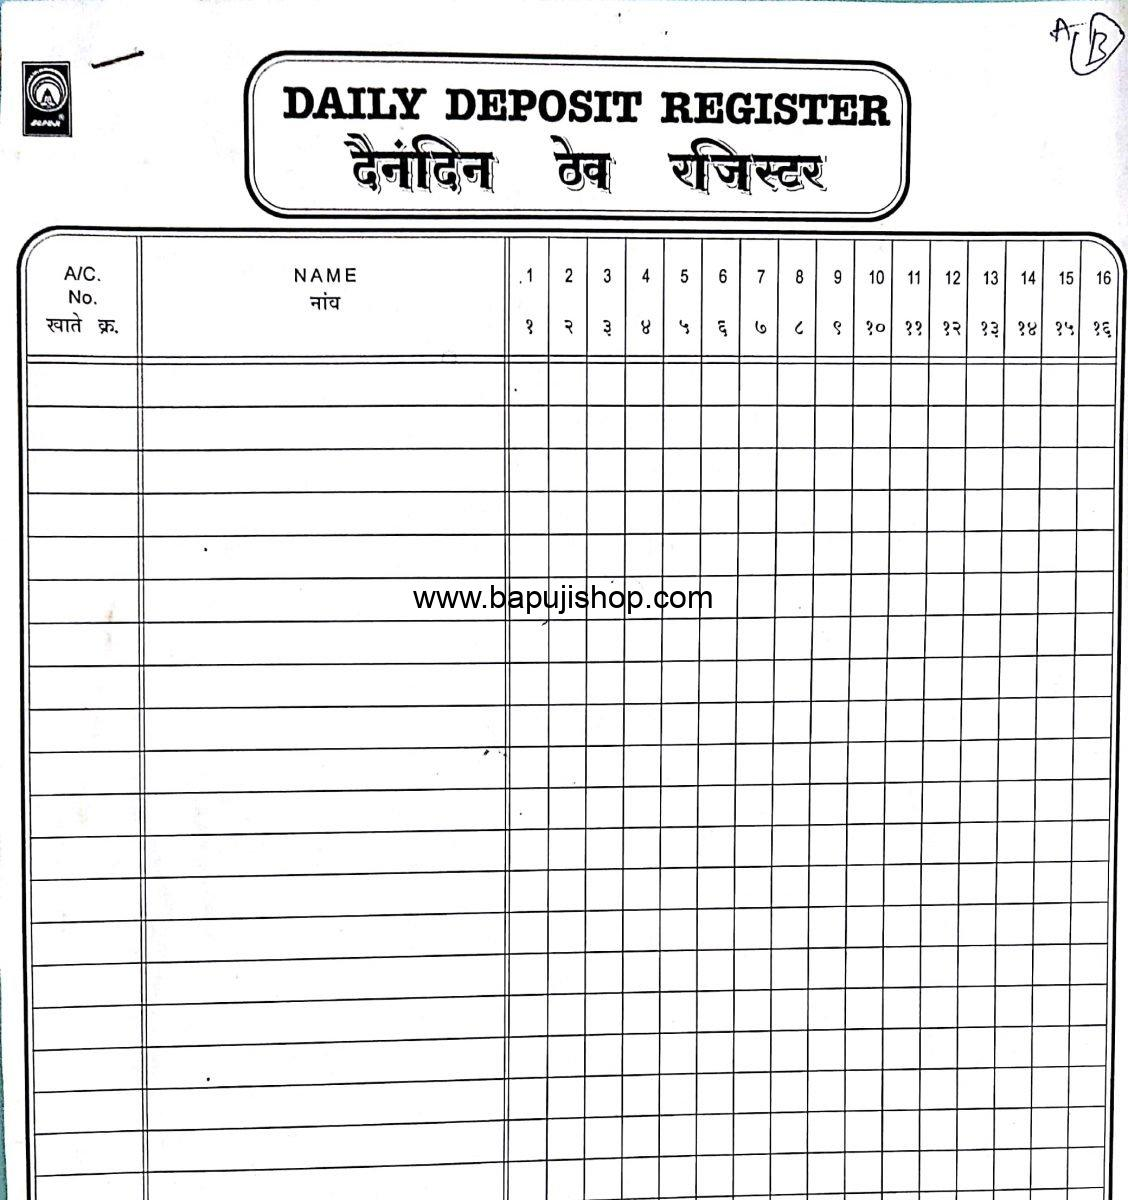 Daily Deposit register account book (Dainandin thev) for Credit and Co-operative housing society